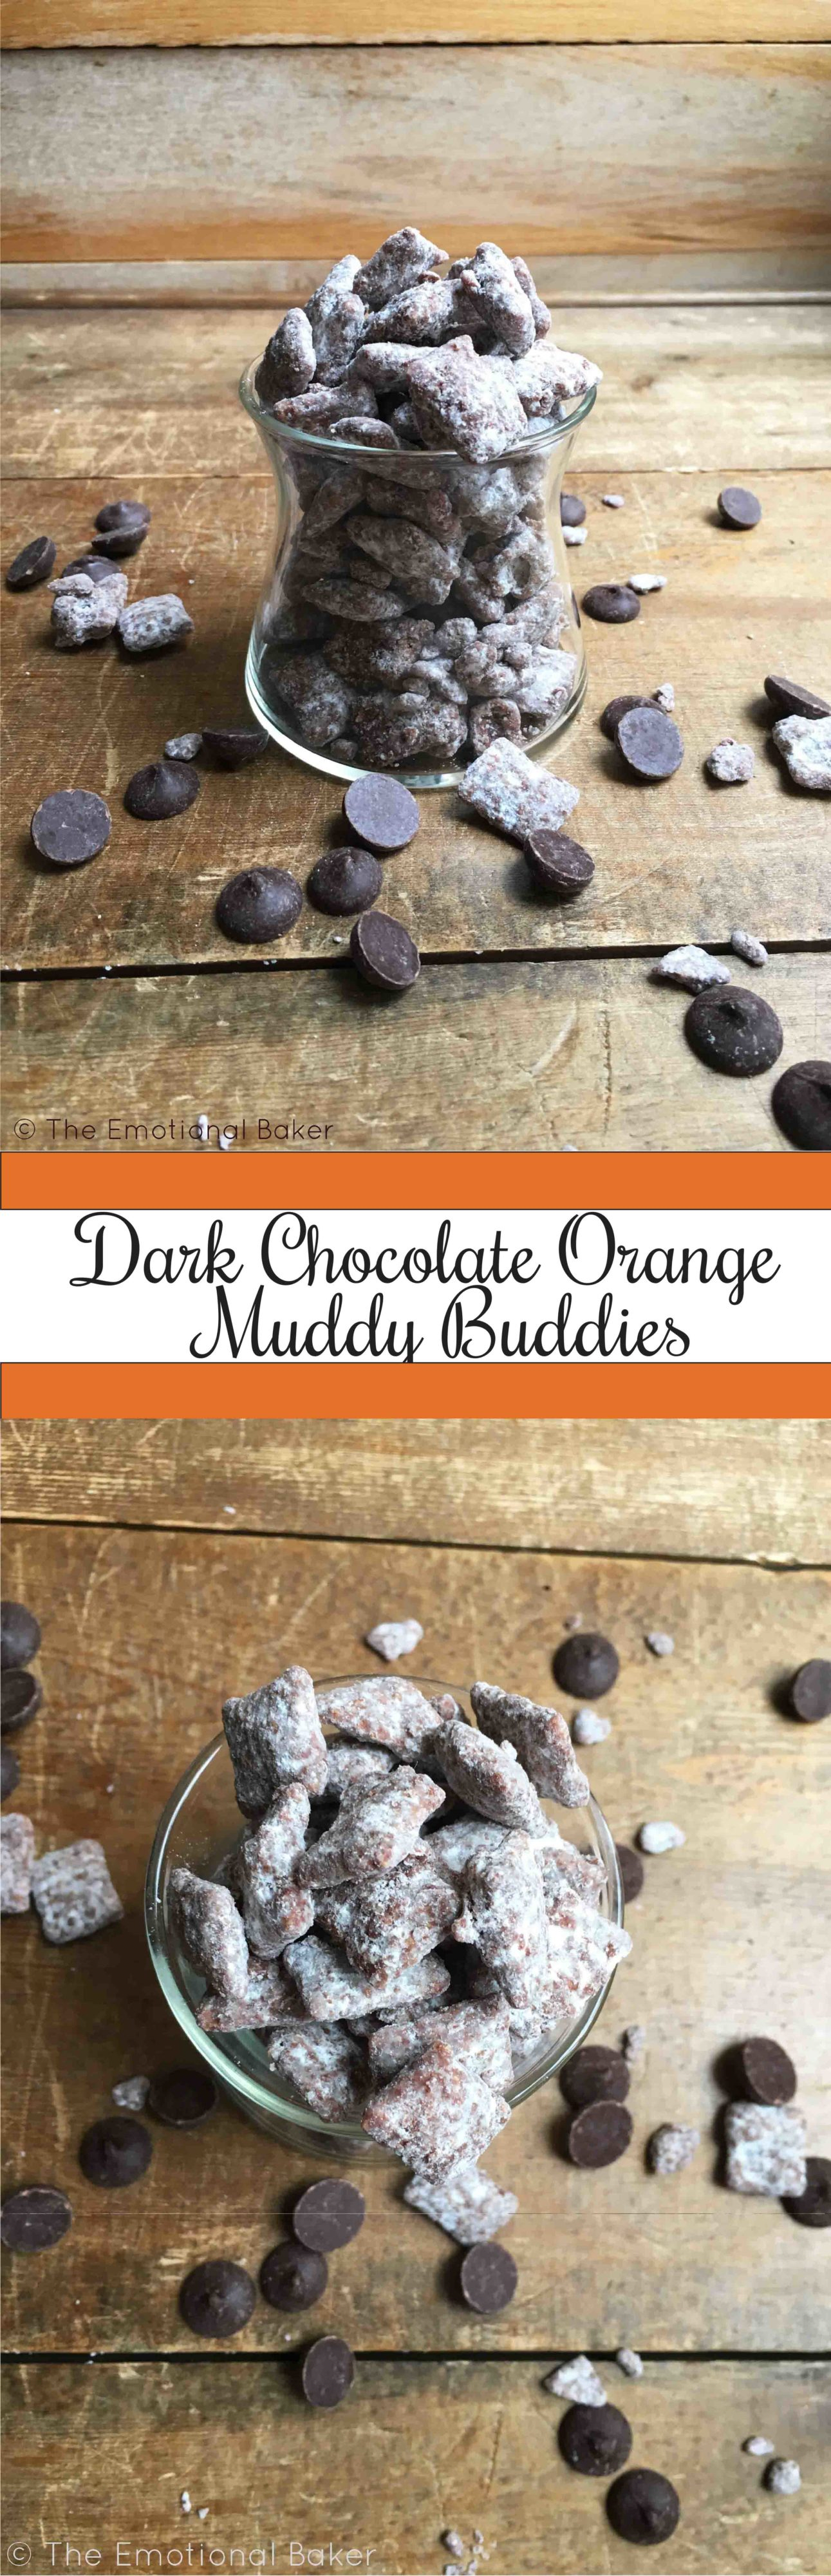 Dark Chocolate Orange Muddy Buddies